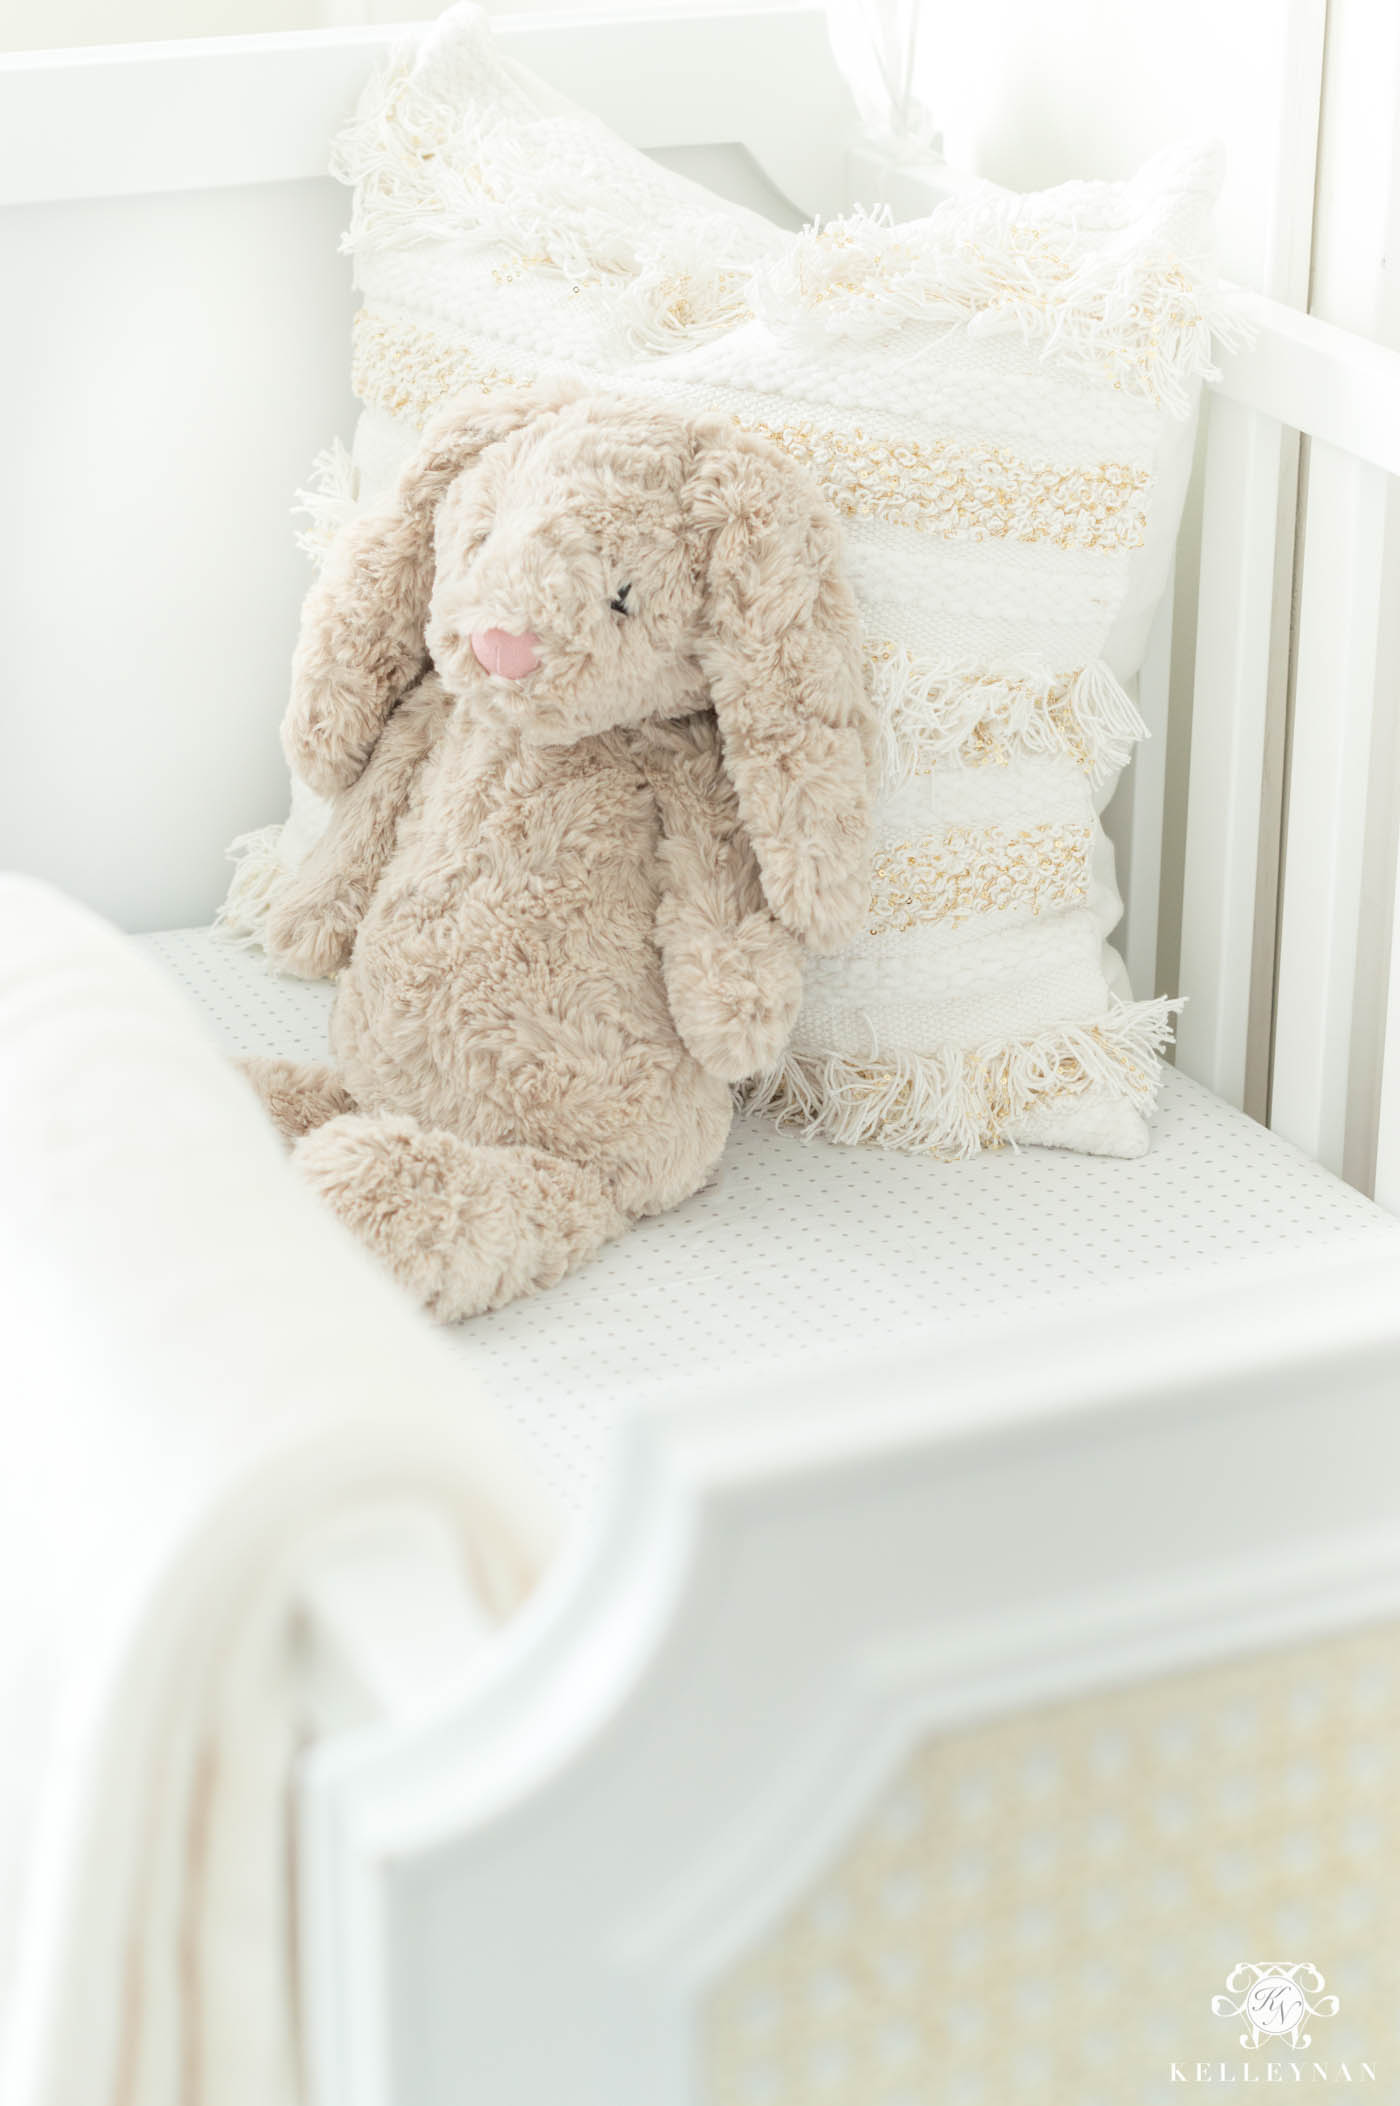 Baby announcement ideas using a crib and nursery and stuffed animal